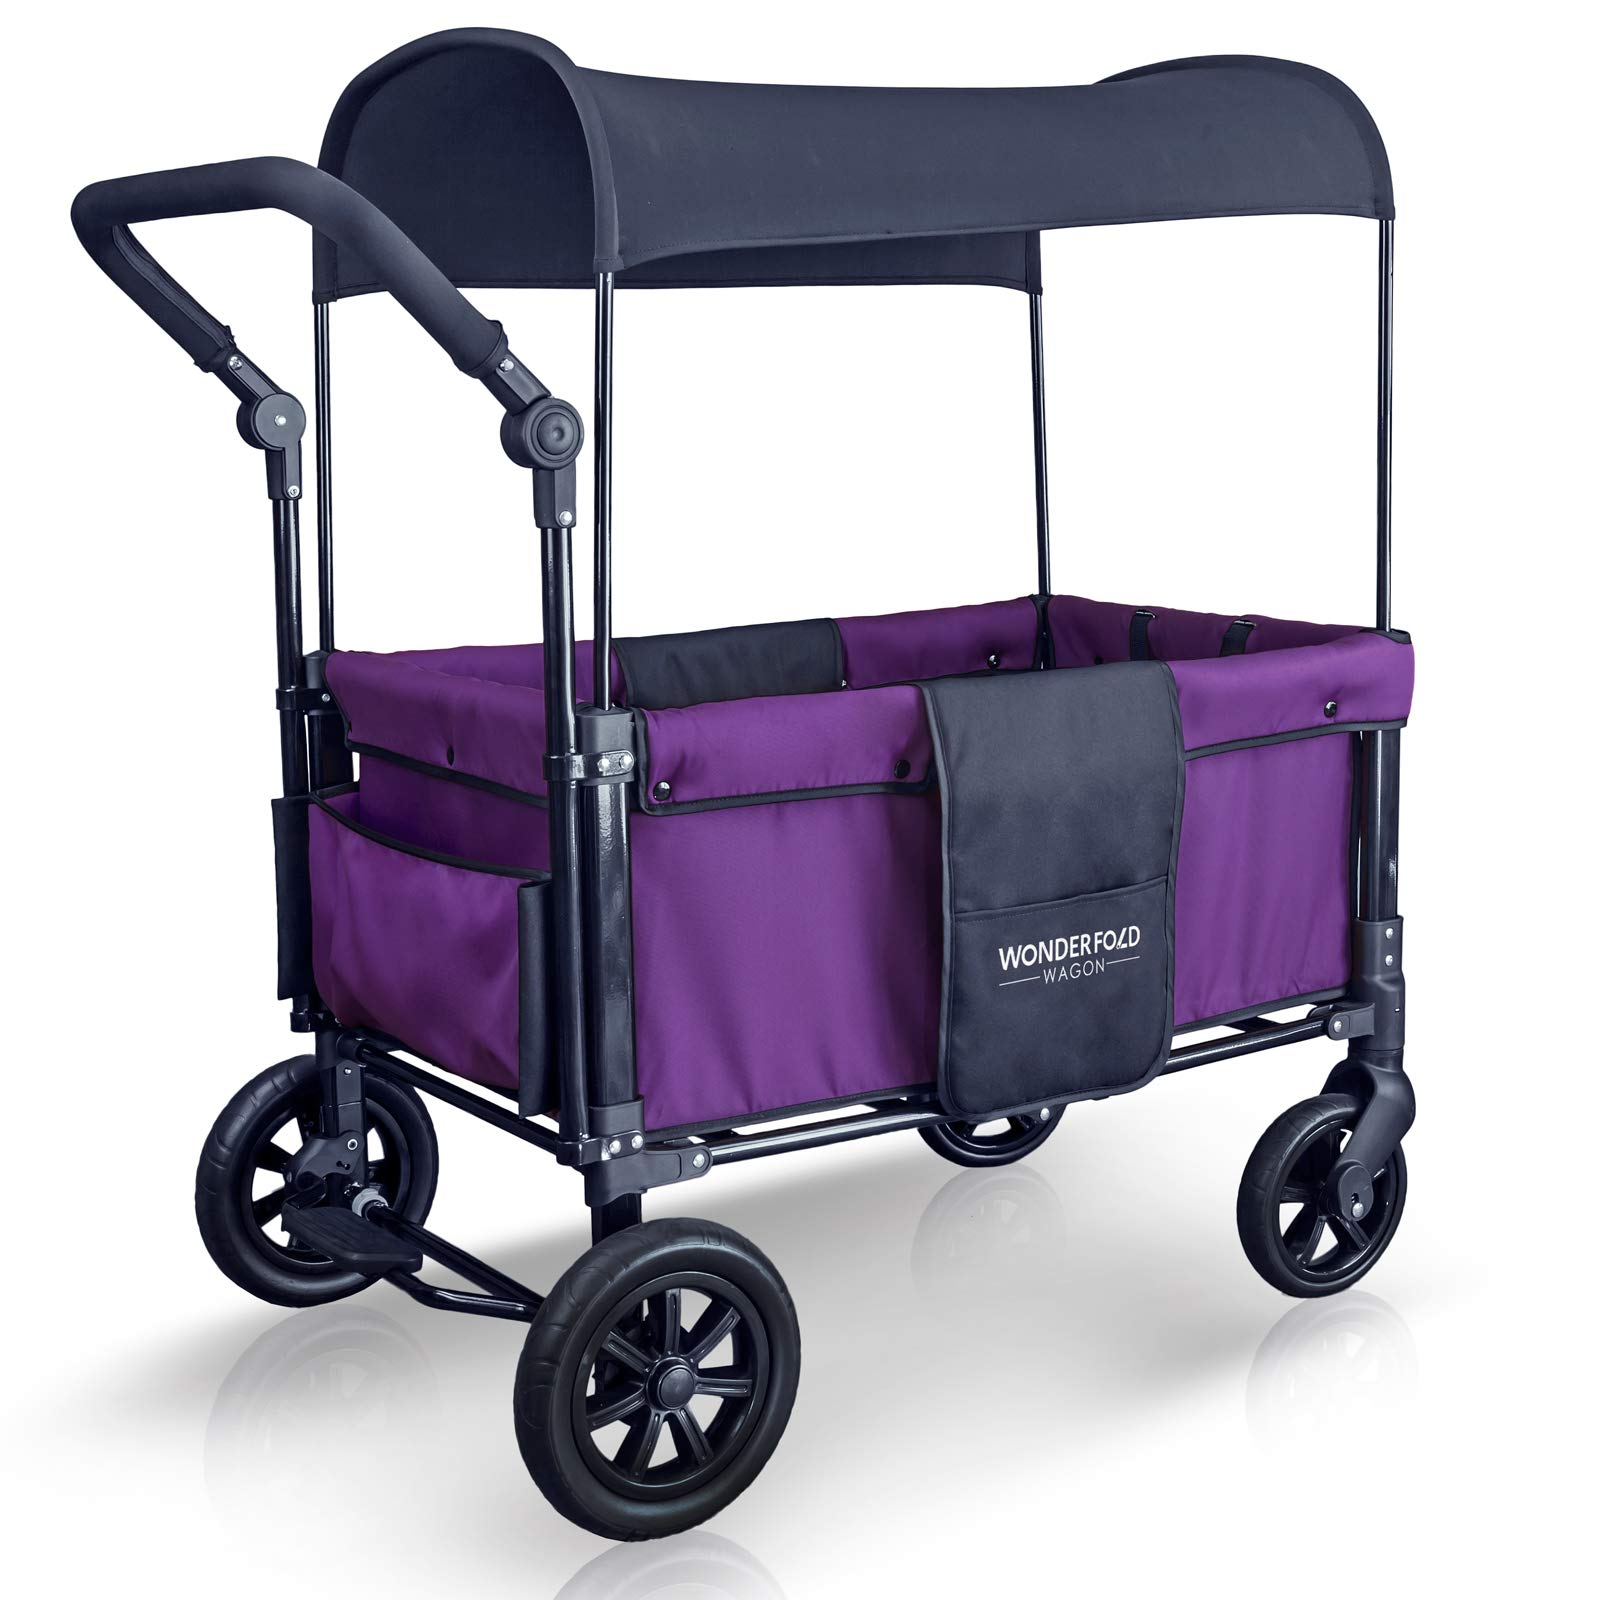 WonderFold Multi-Function 2 Passenger Push Folding Stroller Wagon, Adjustable & Removable Canopy, Double Seats with 5-Point Harness (Cobalt Violet) by WonderFold (Image #3)